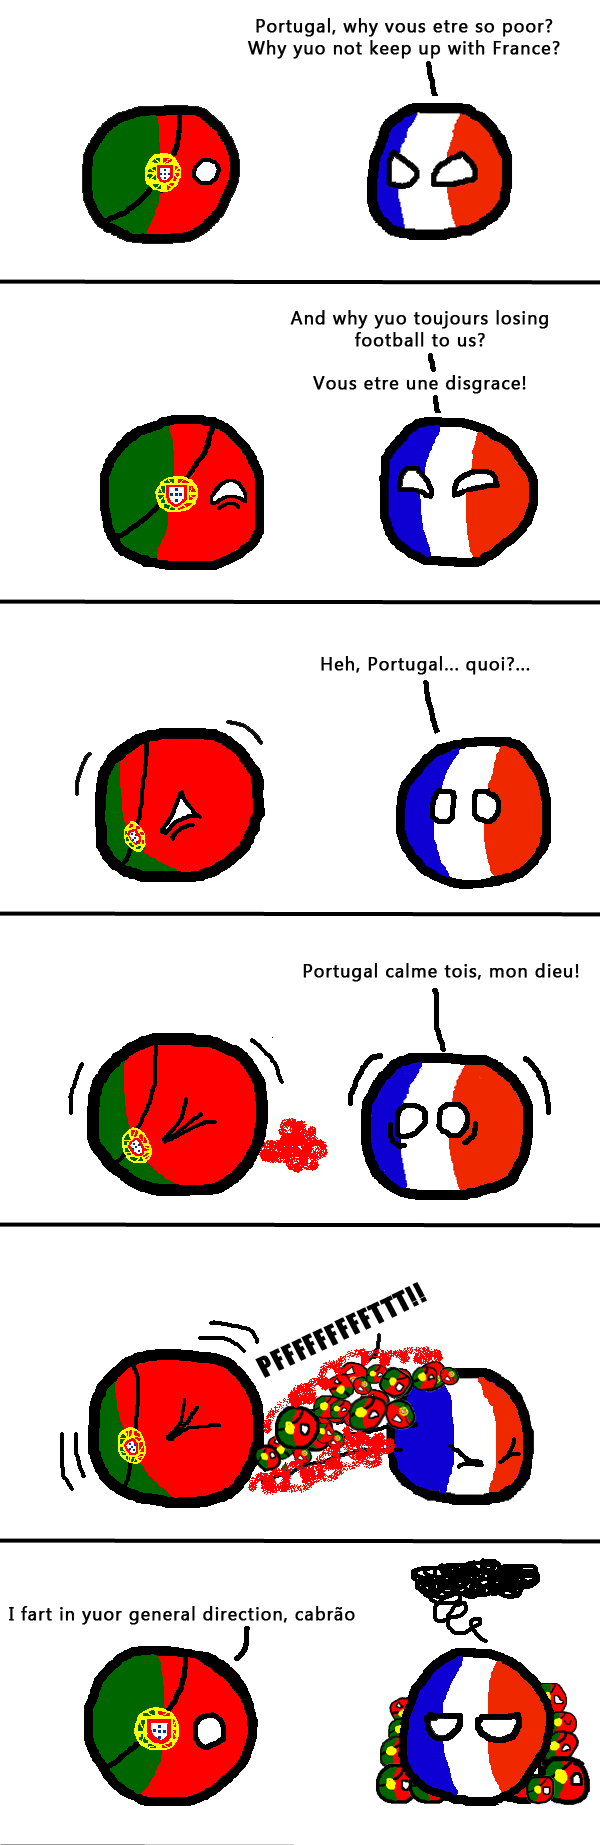 Portuguese diaspora in France explained